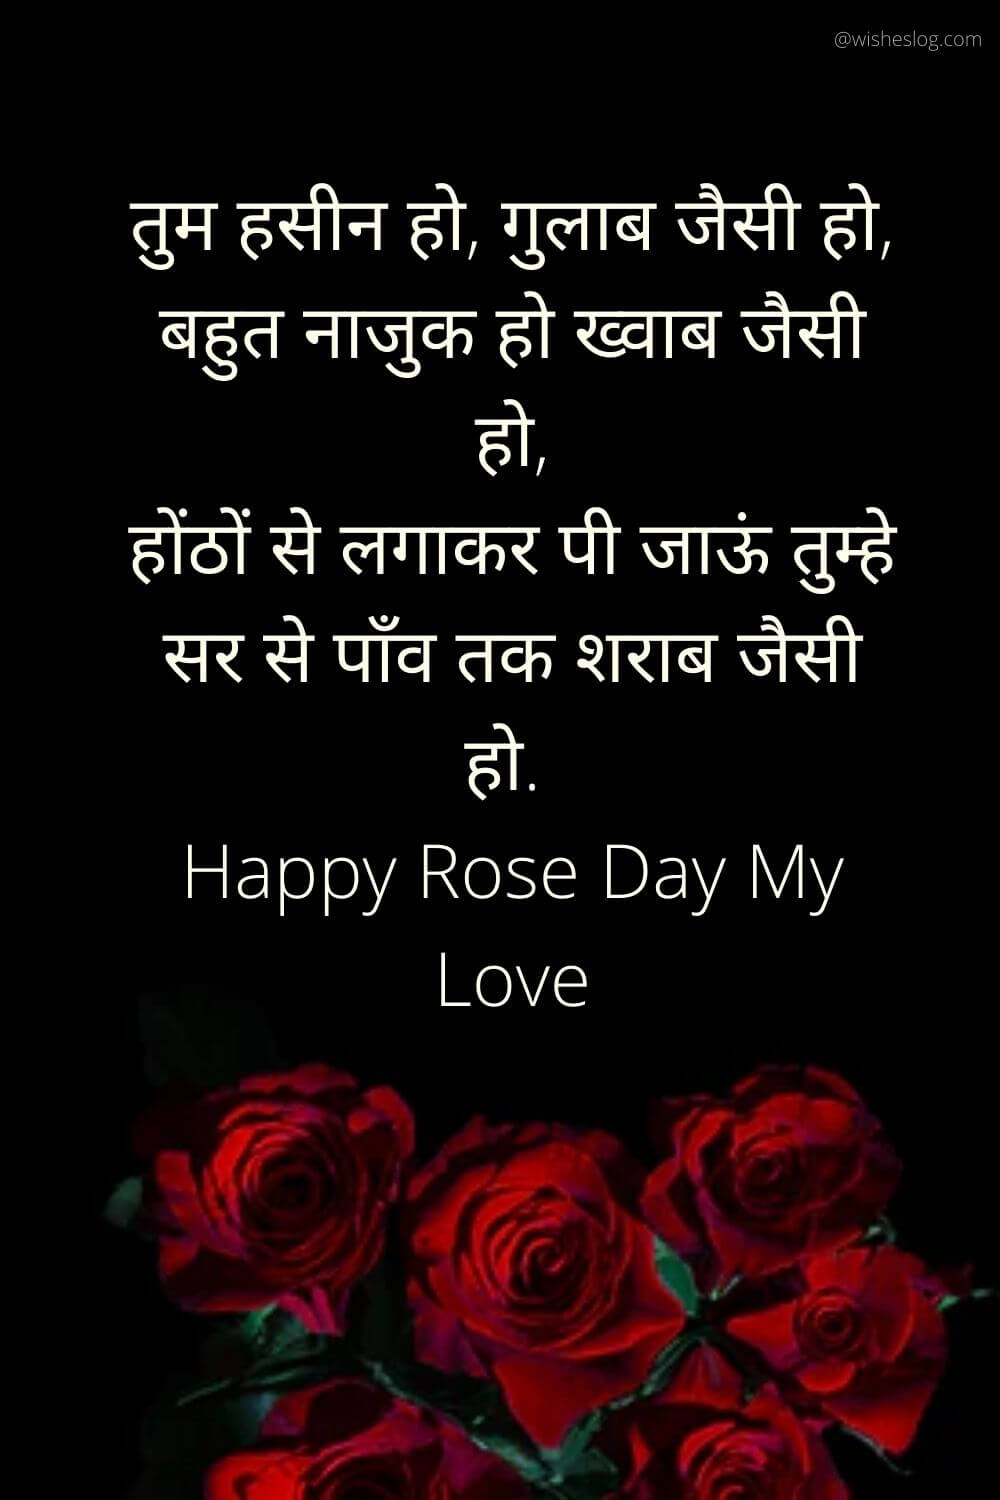 rose day wishes for wife in hindi